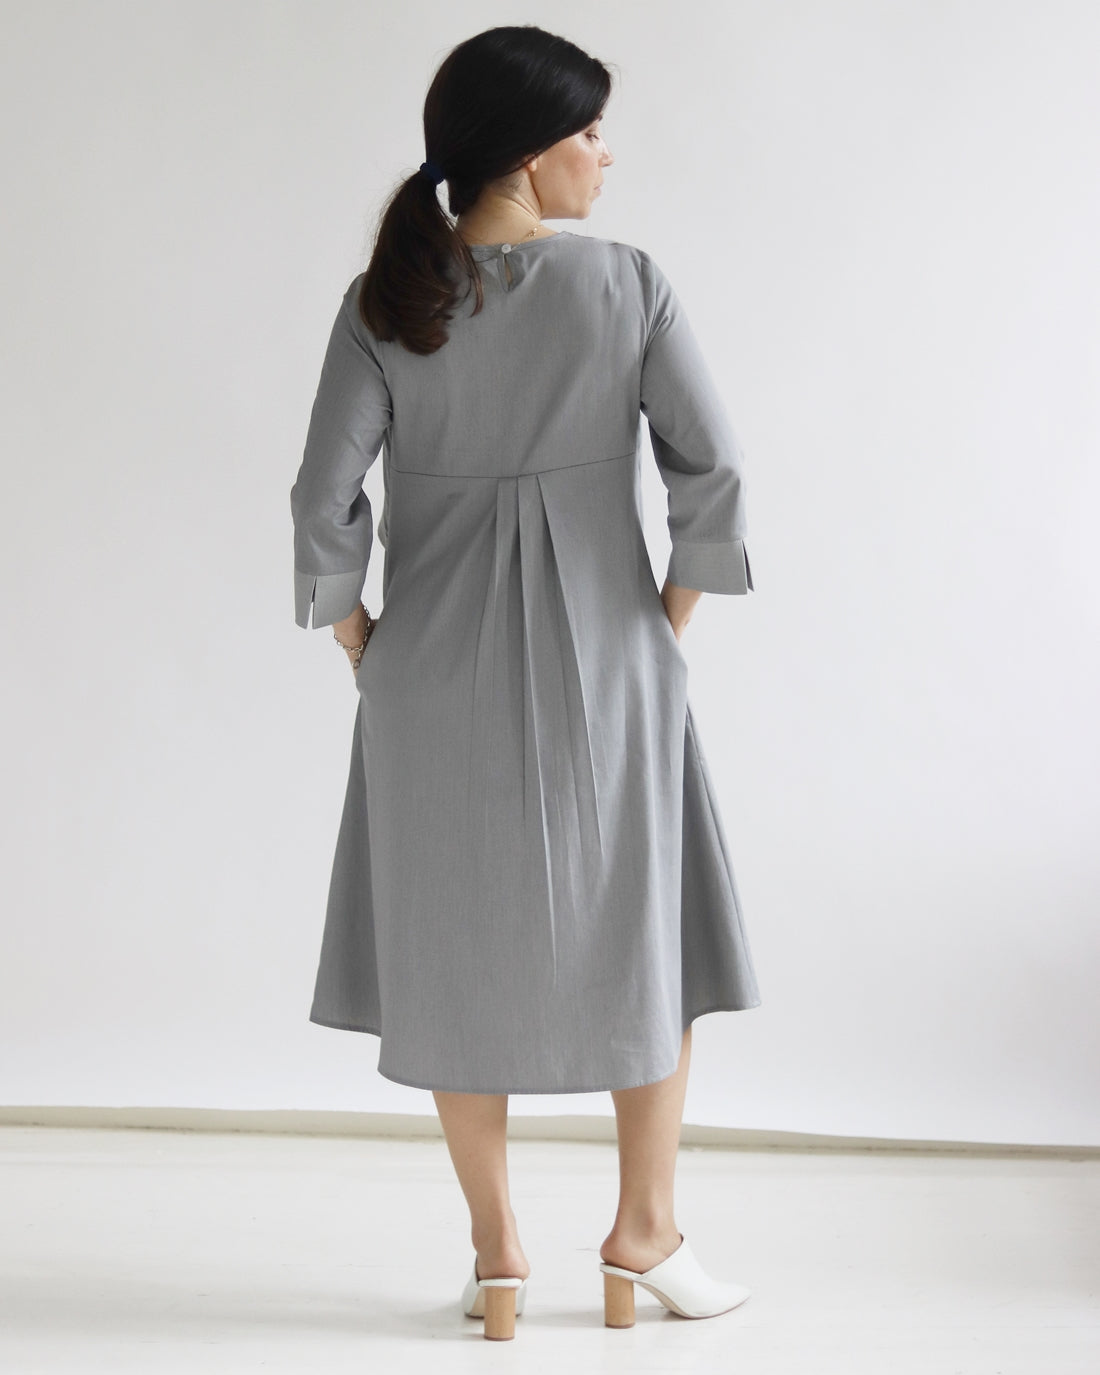 Aviva Bib Dress - Sarah Feldman Cape Town